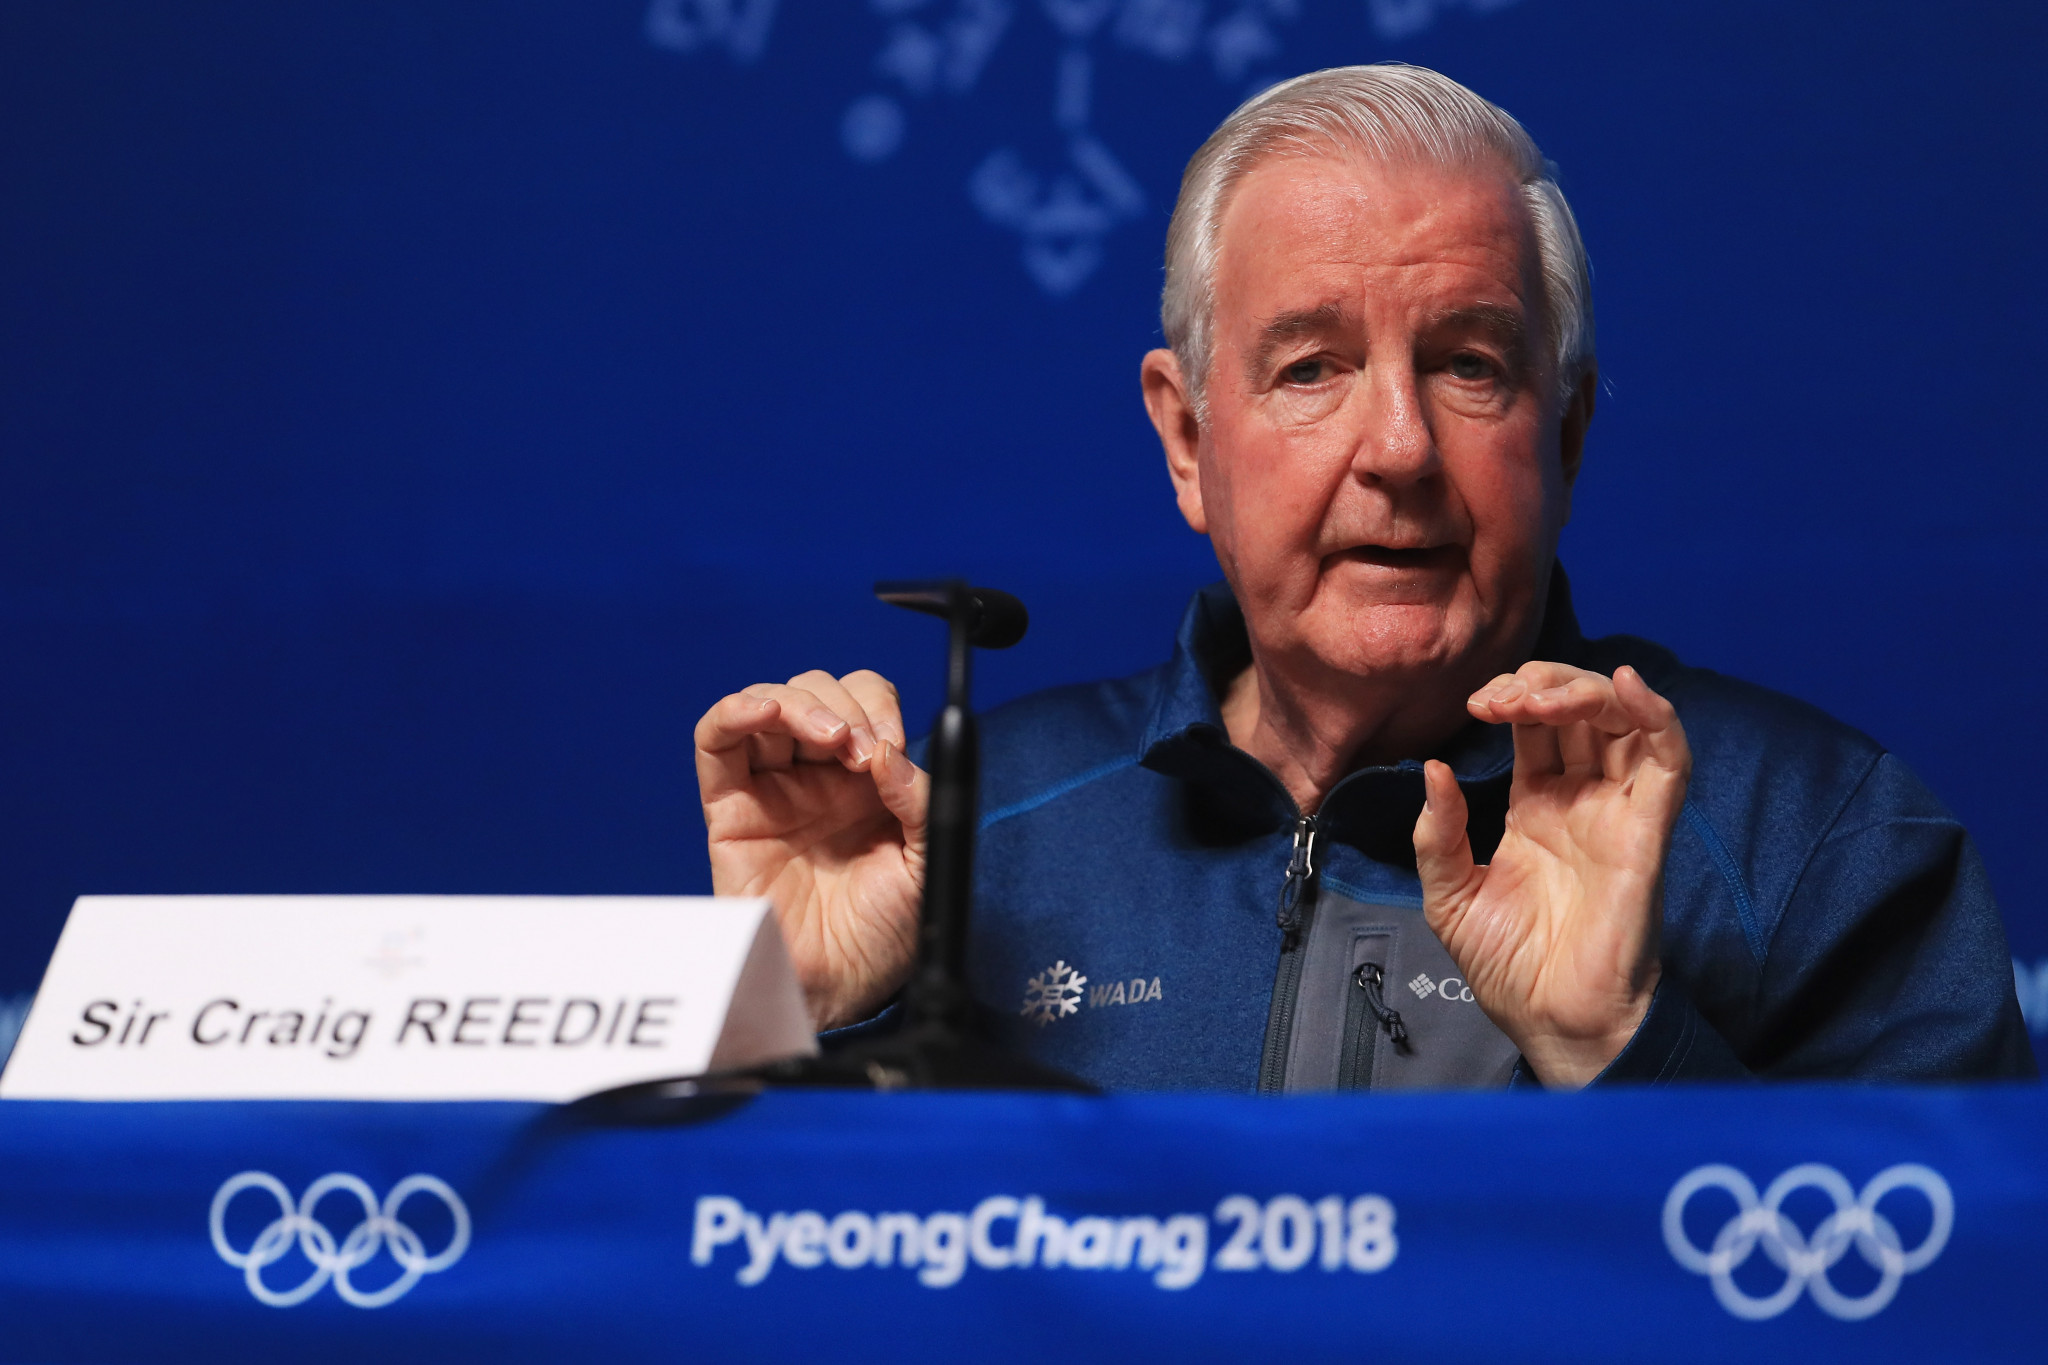 Sir Craig Reedie believes a longer Russian Olympic Committee suspension may have aided efforts to make RUSADA fully complaint ©Getty Images